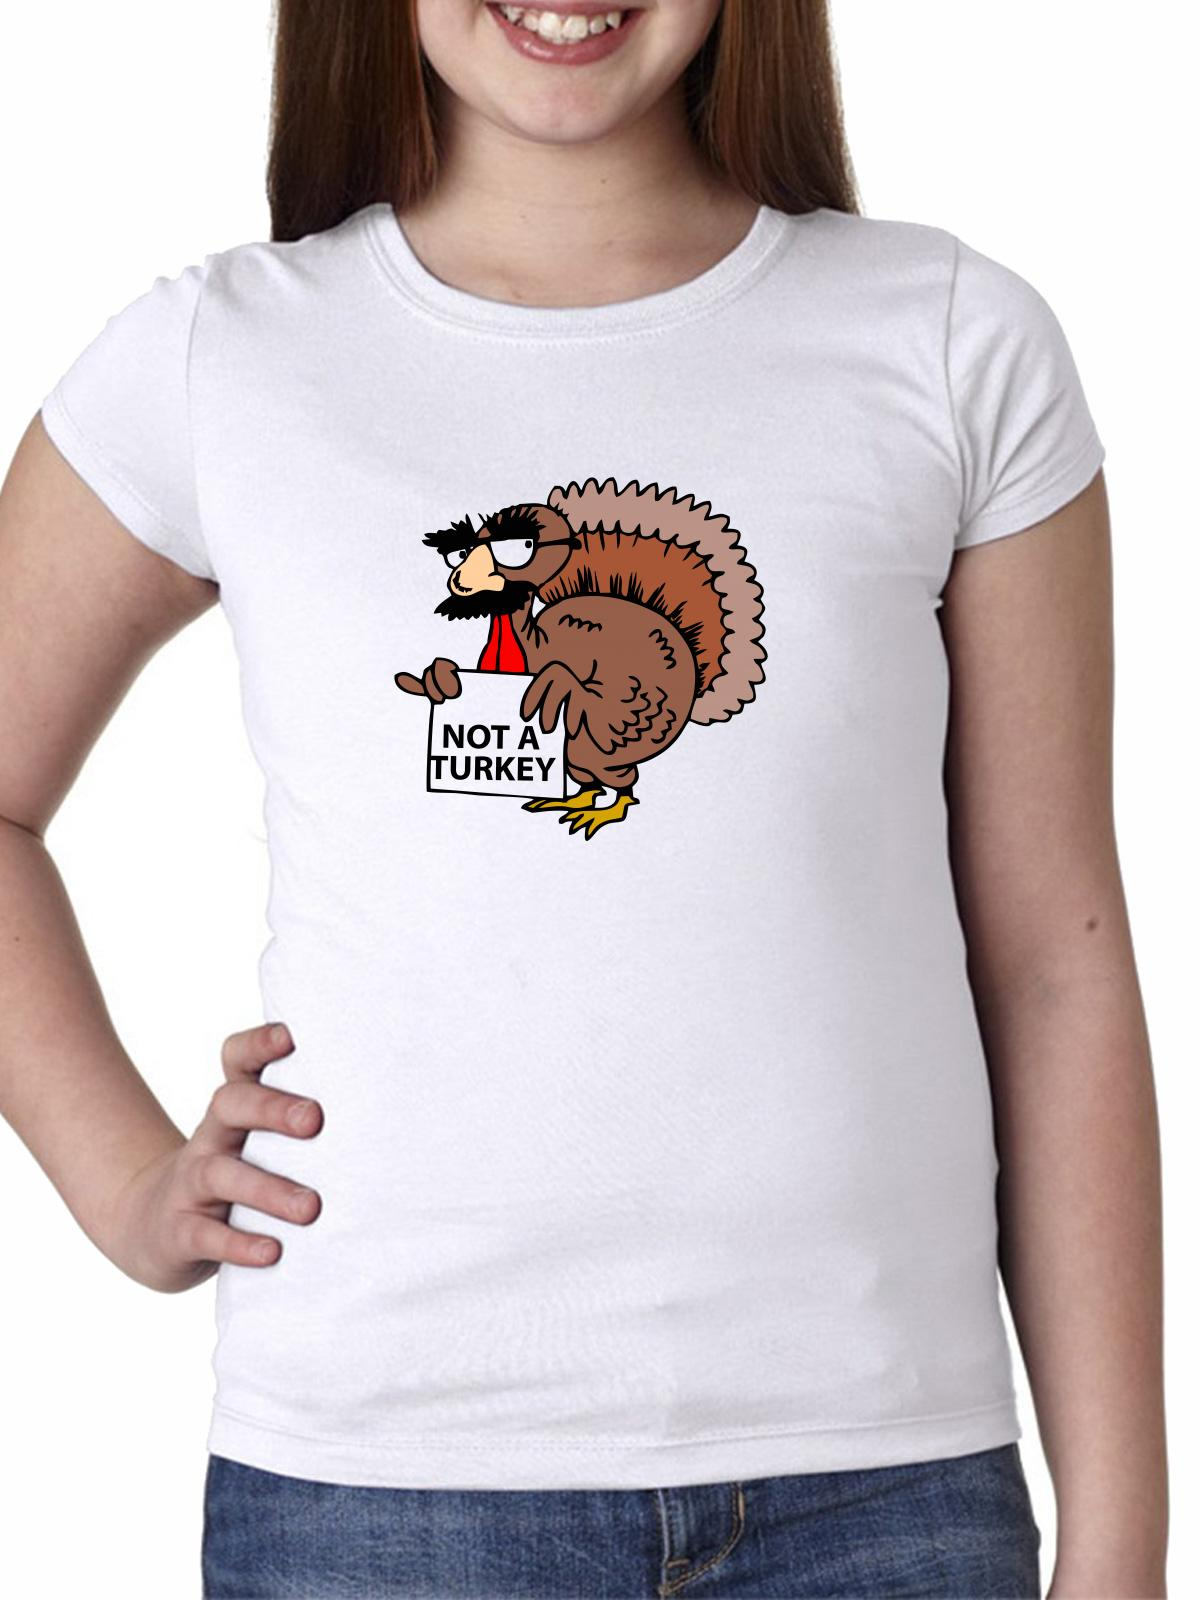 8320b5761a31a Thanksgiving Turkey In Disguise - Not A Turkey Girl s Cotton Youth T-Shirt